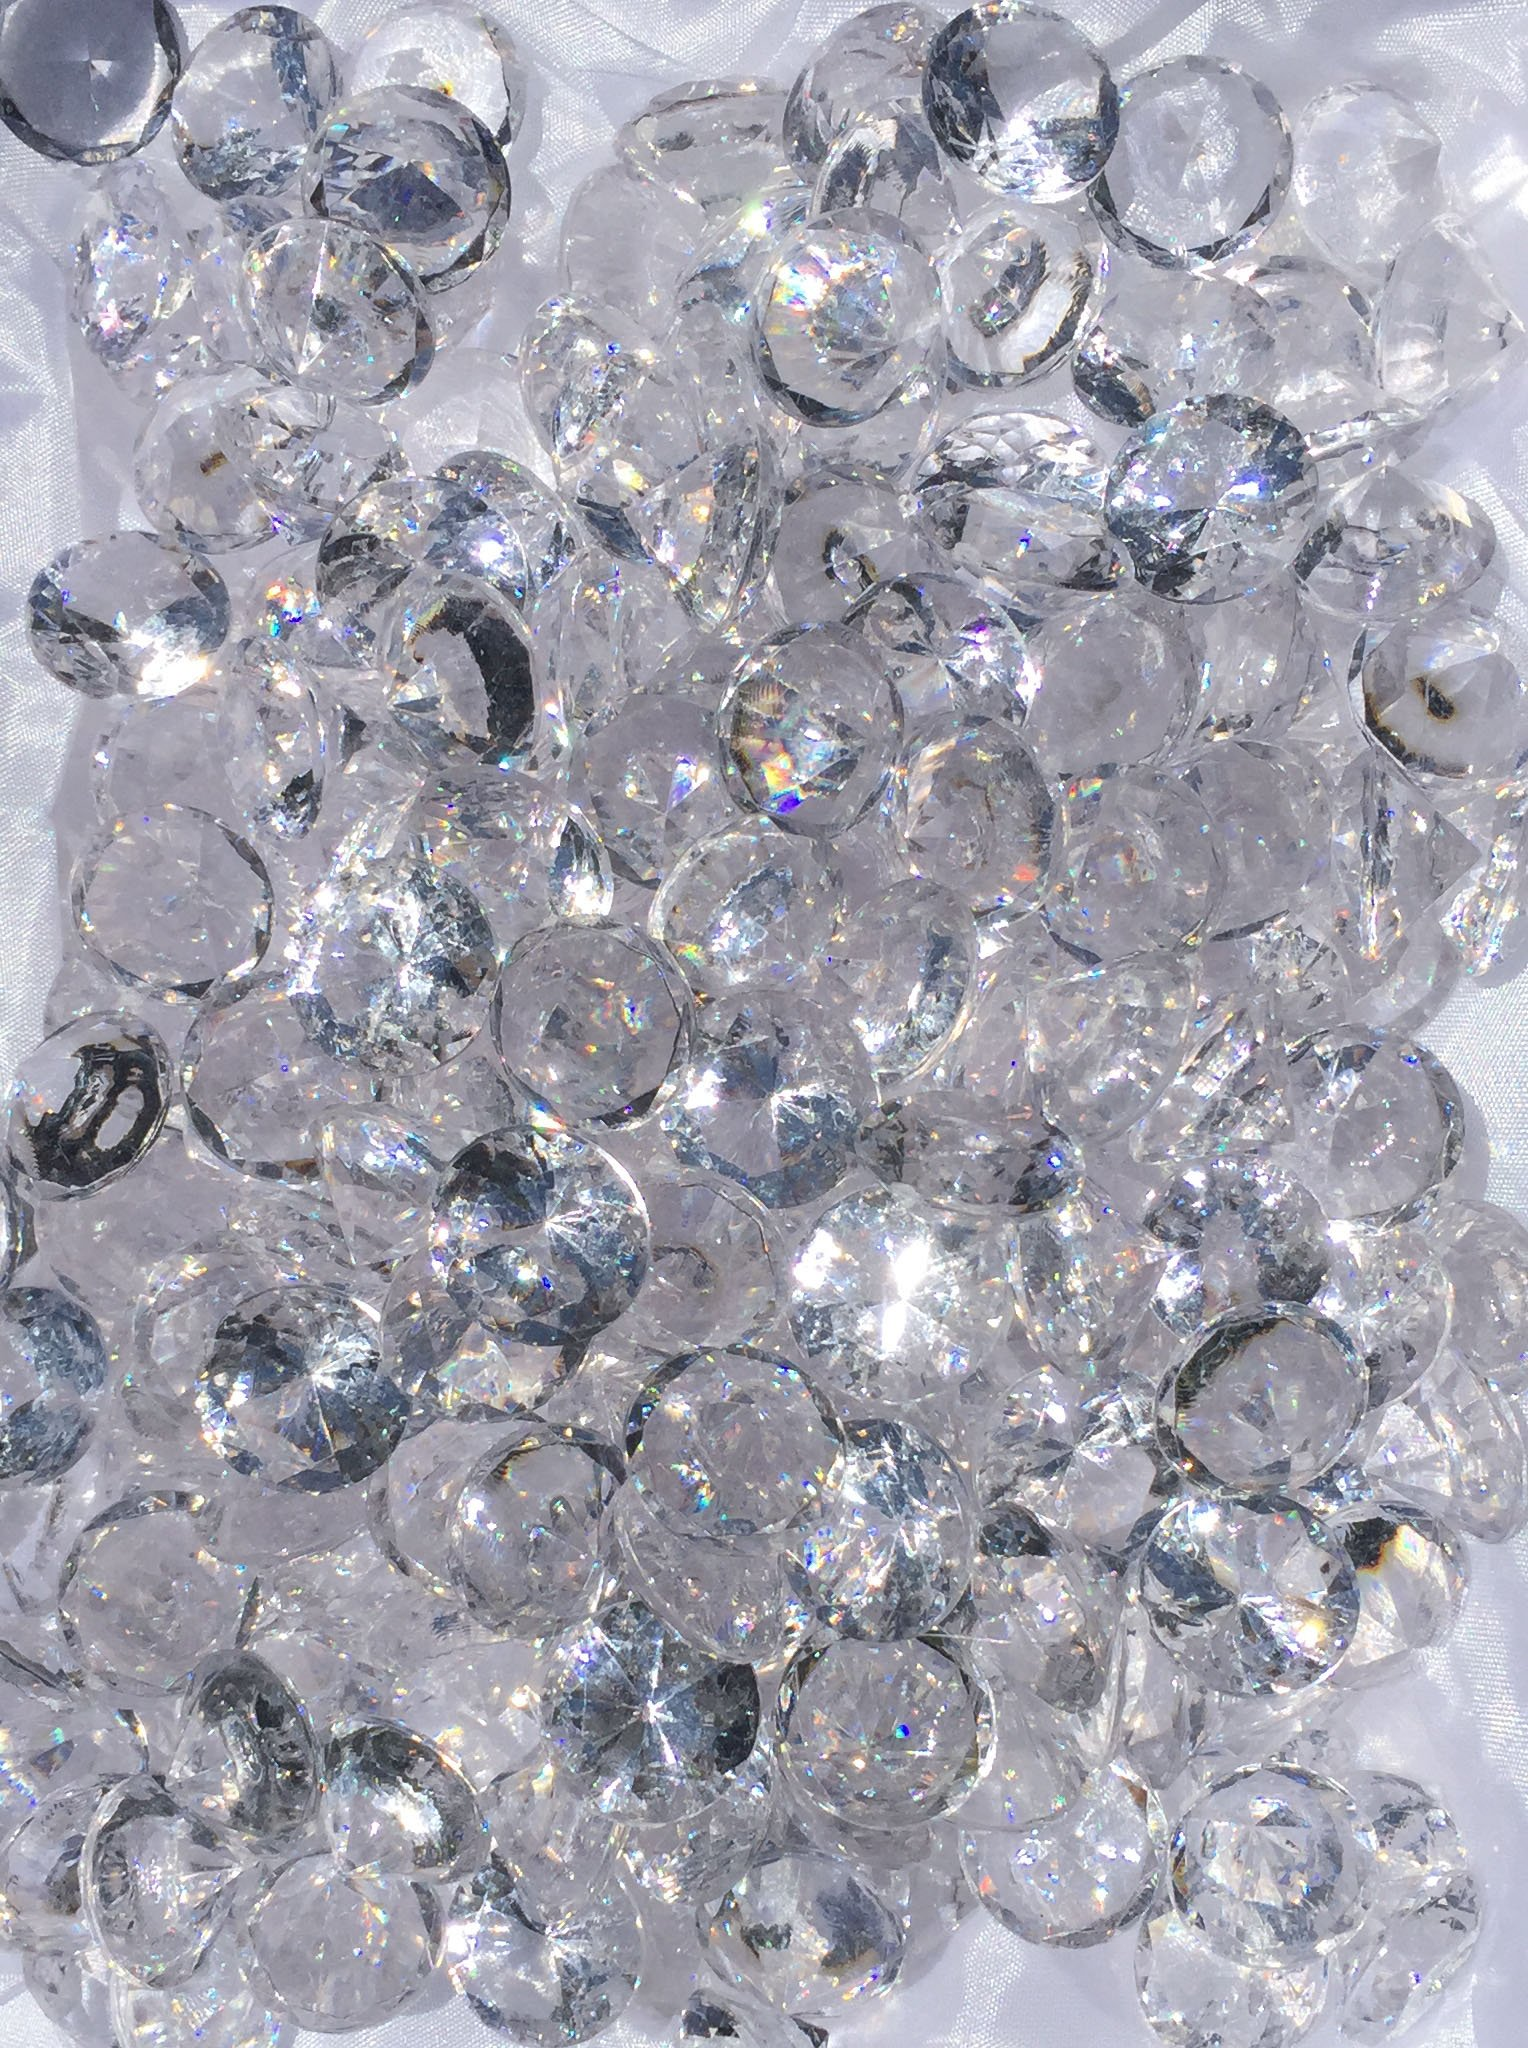 480+ Pieces 20mm Crystal Clear Acrylic Diamond Shape Jewels for Party Decoration ,Event ,Wedding , Vase Fillers, Arts & Crafts by SunRise (Image #1)